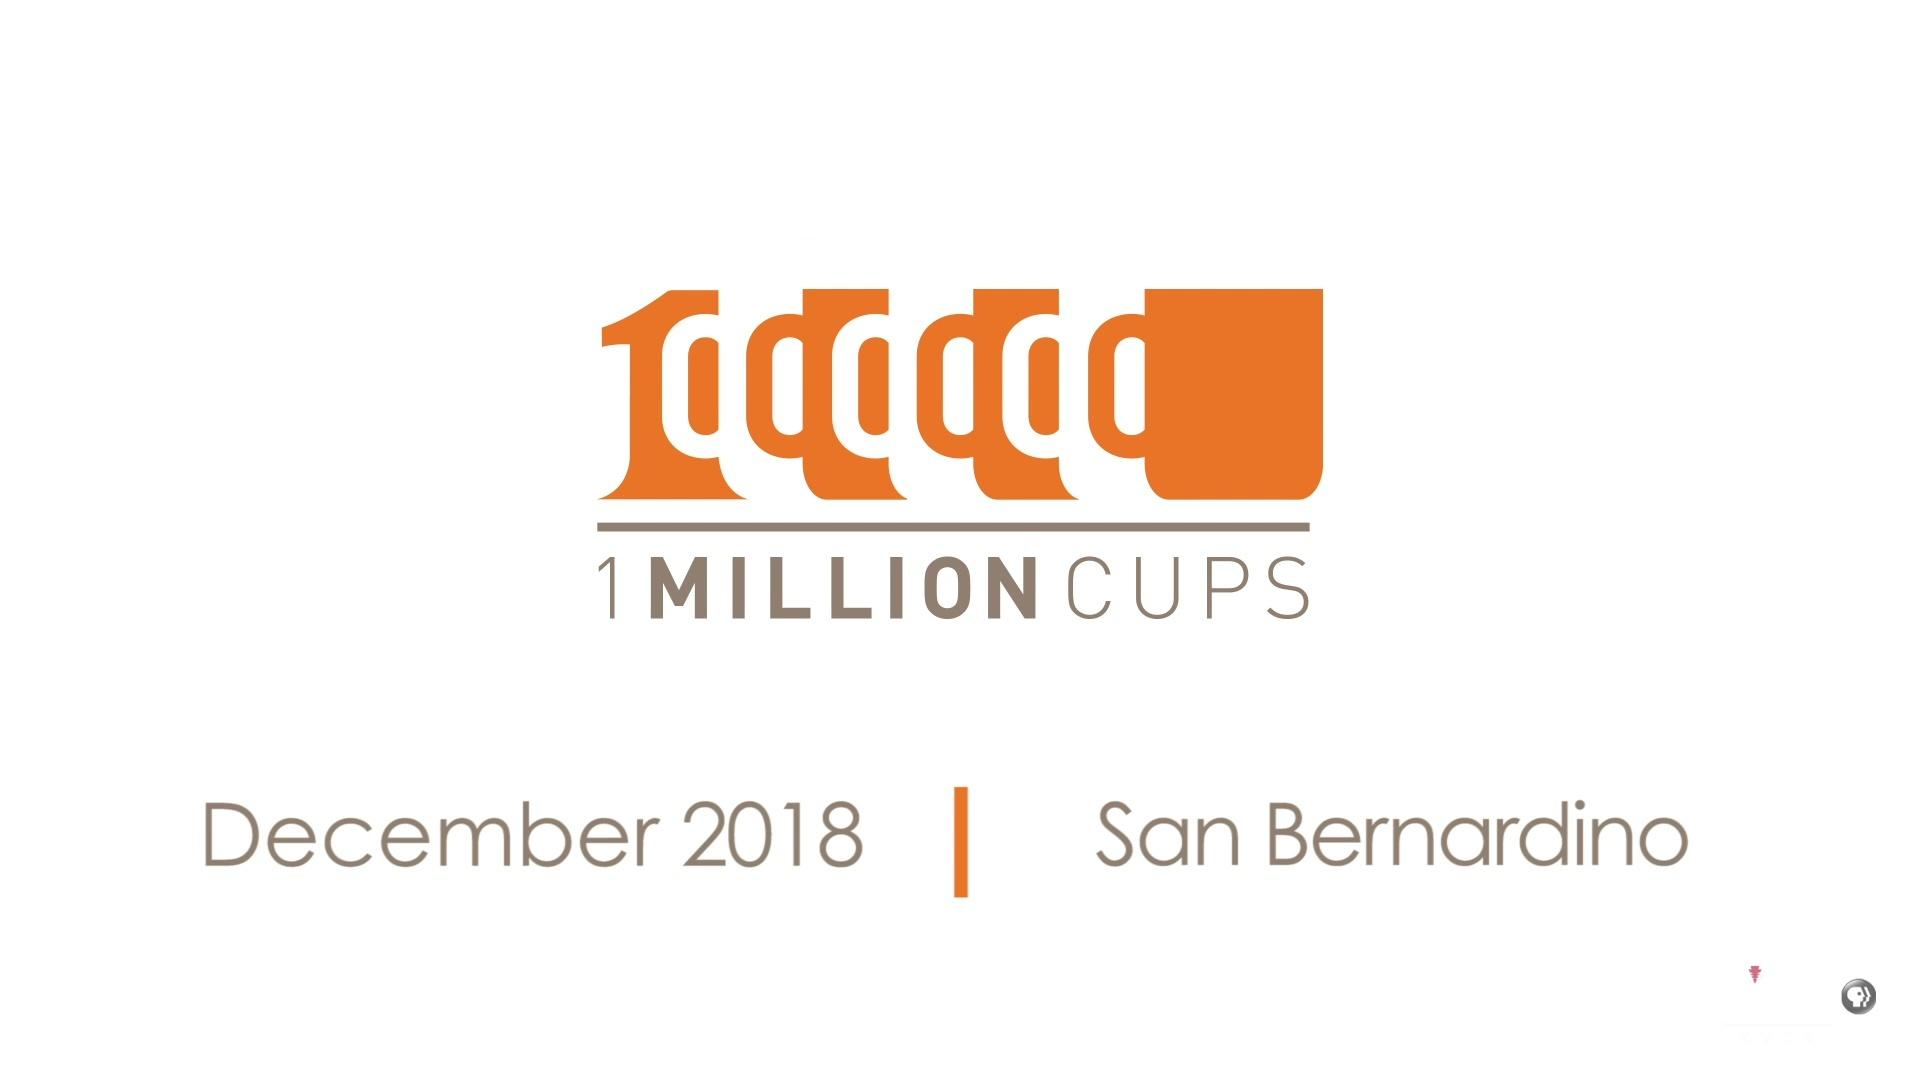 One Million Cups December 2018